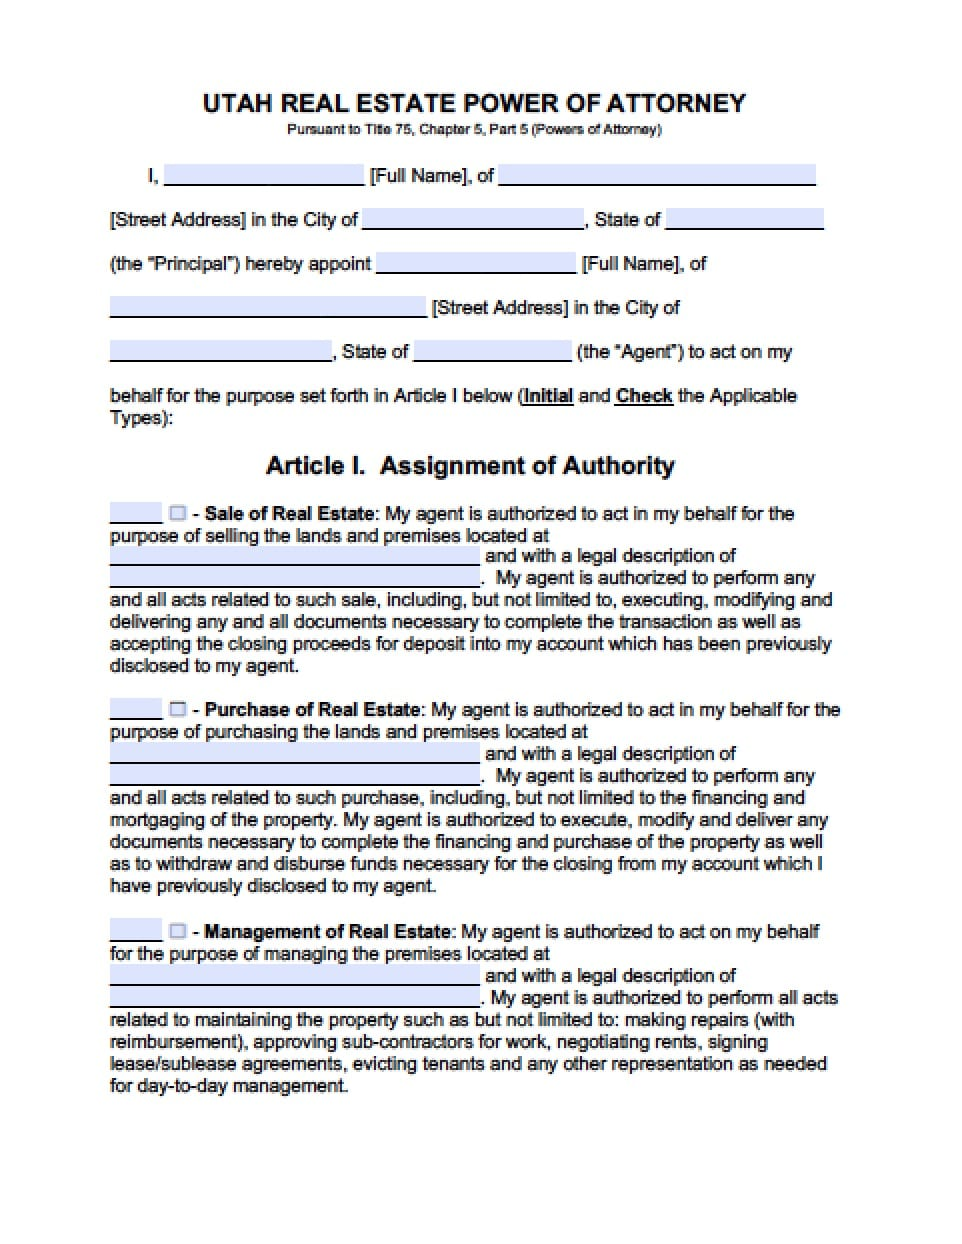 power of attorney form utah  Utah Real Estate ONLY Power of Attorney Form - Power of ...